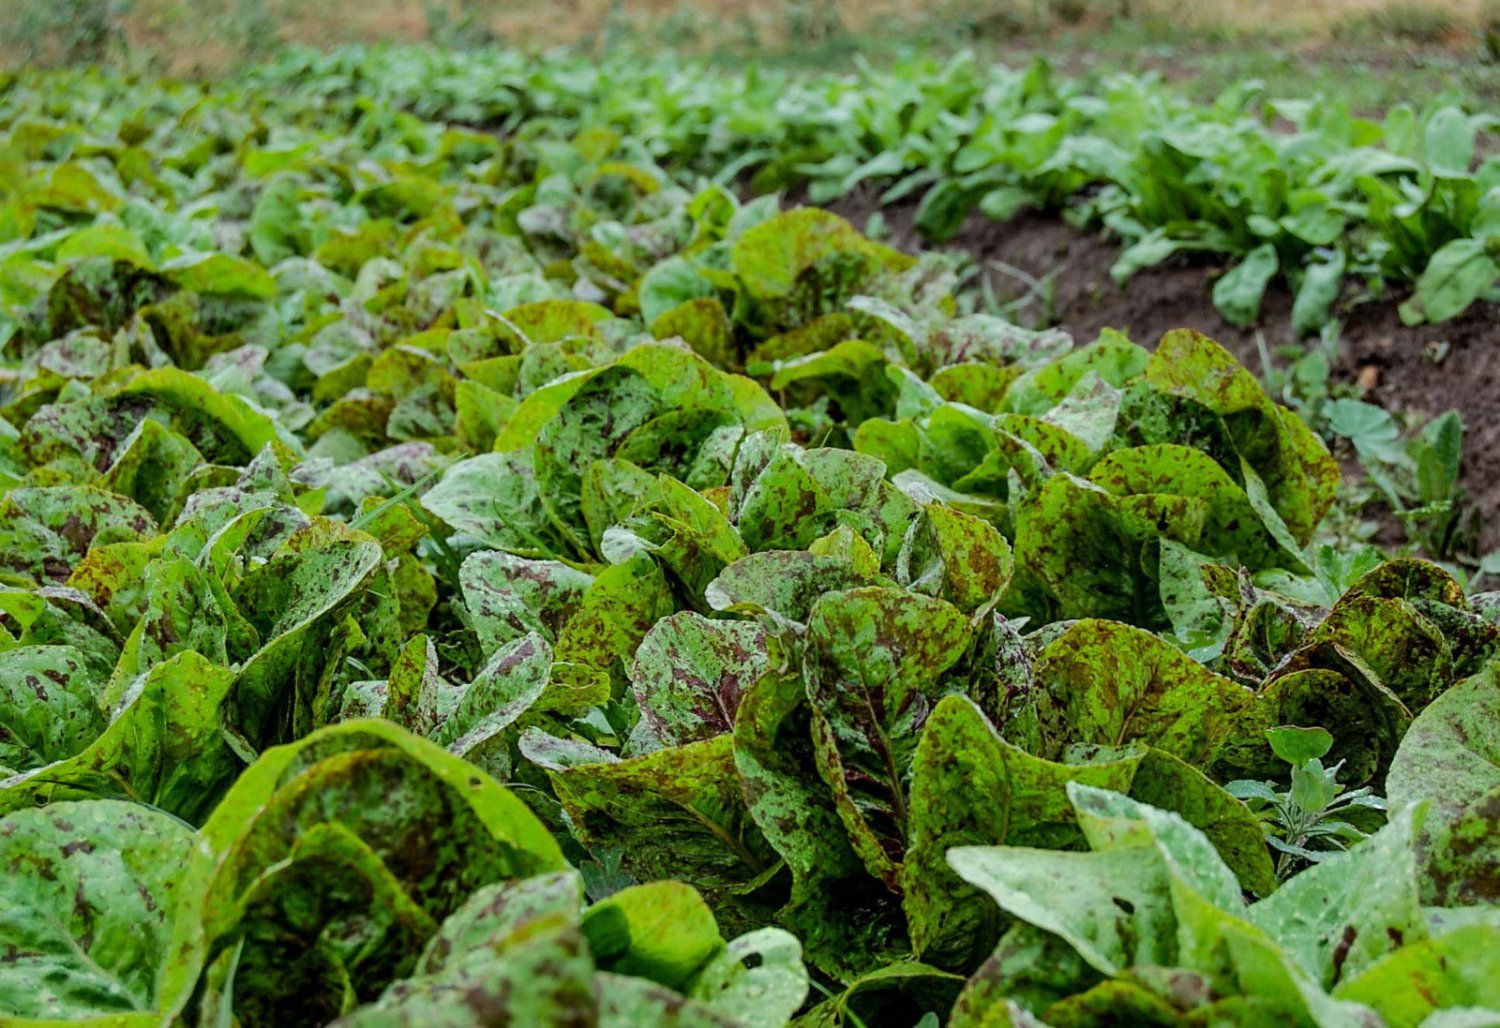 500 Freckles Romaine Lettuce seeds great 4 salad ez grow CombSH A46